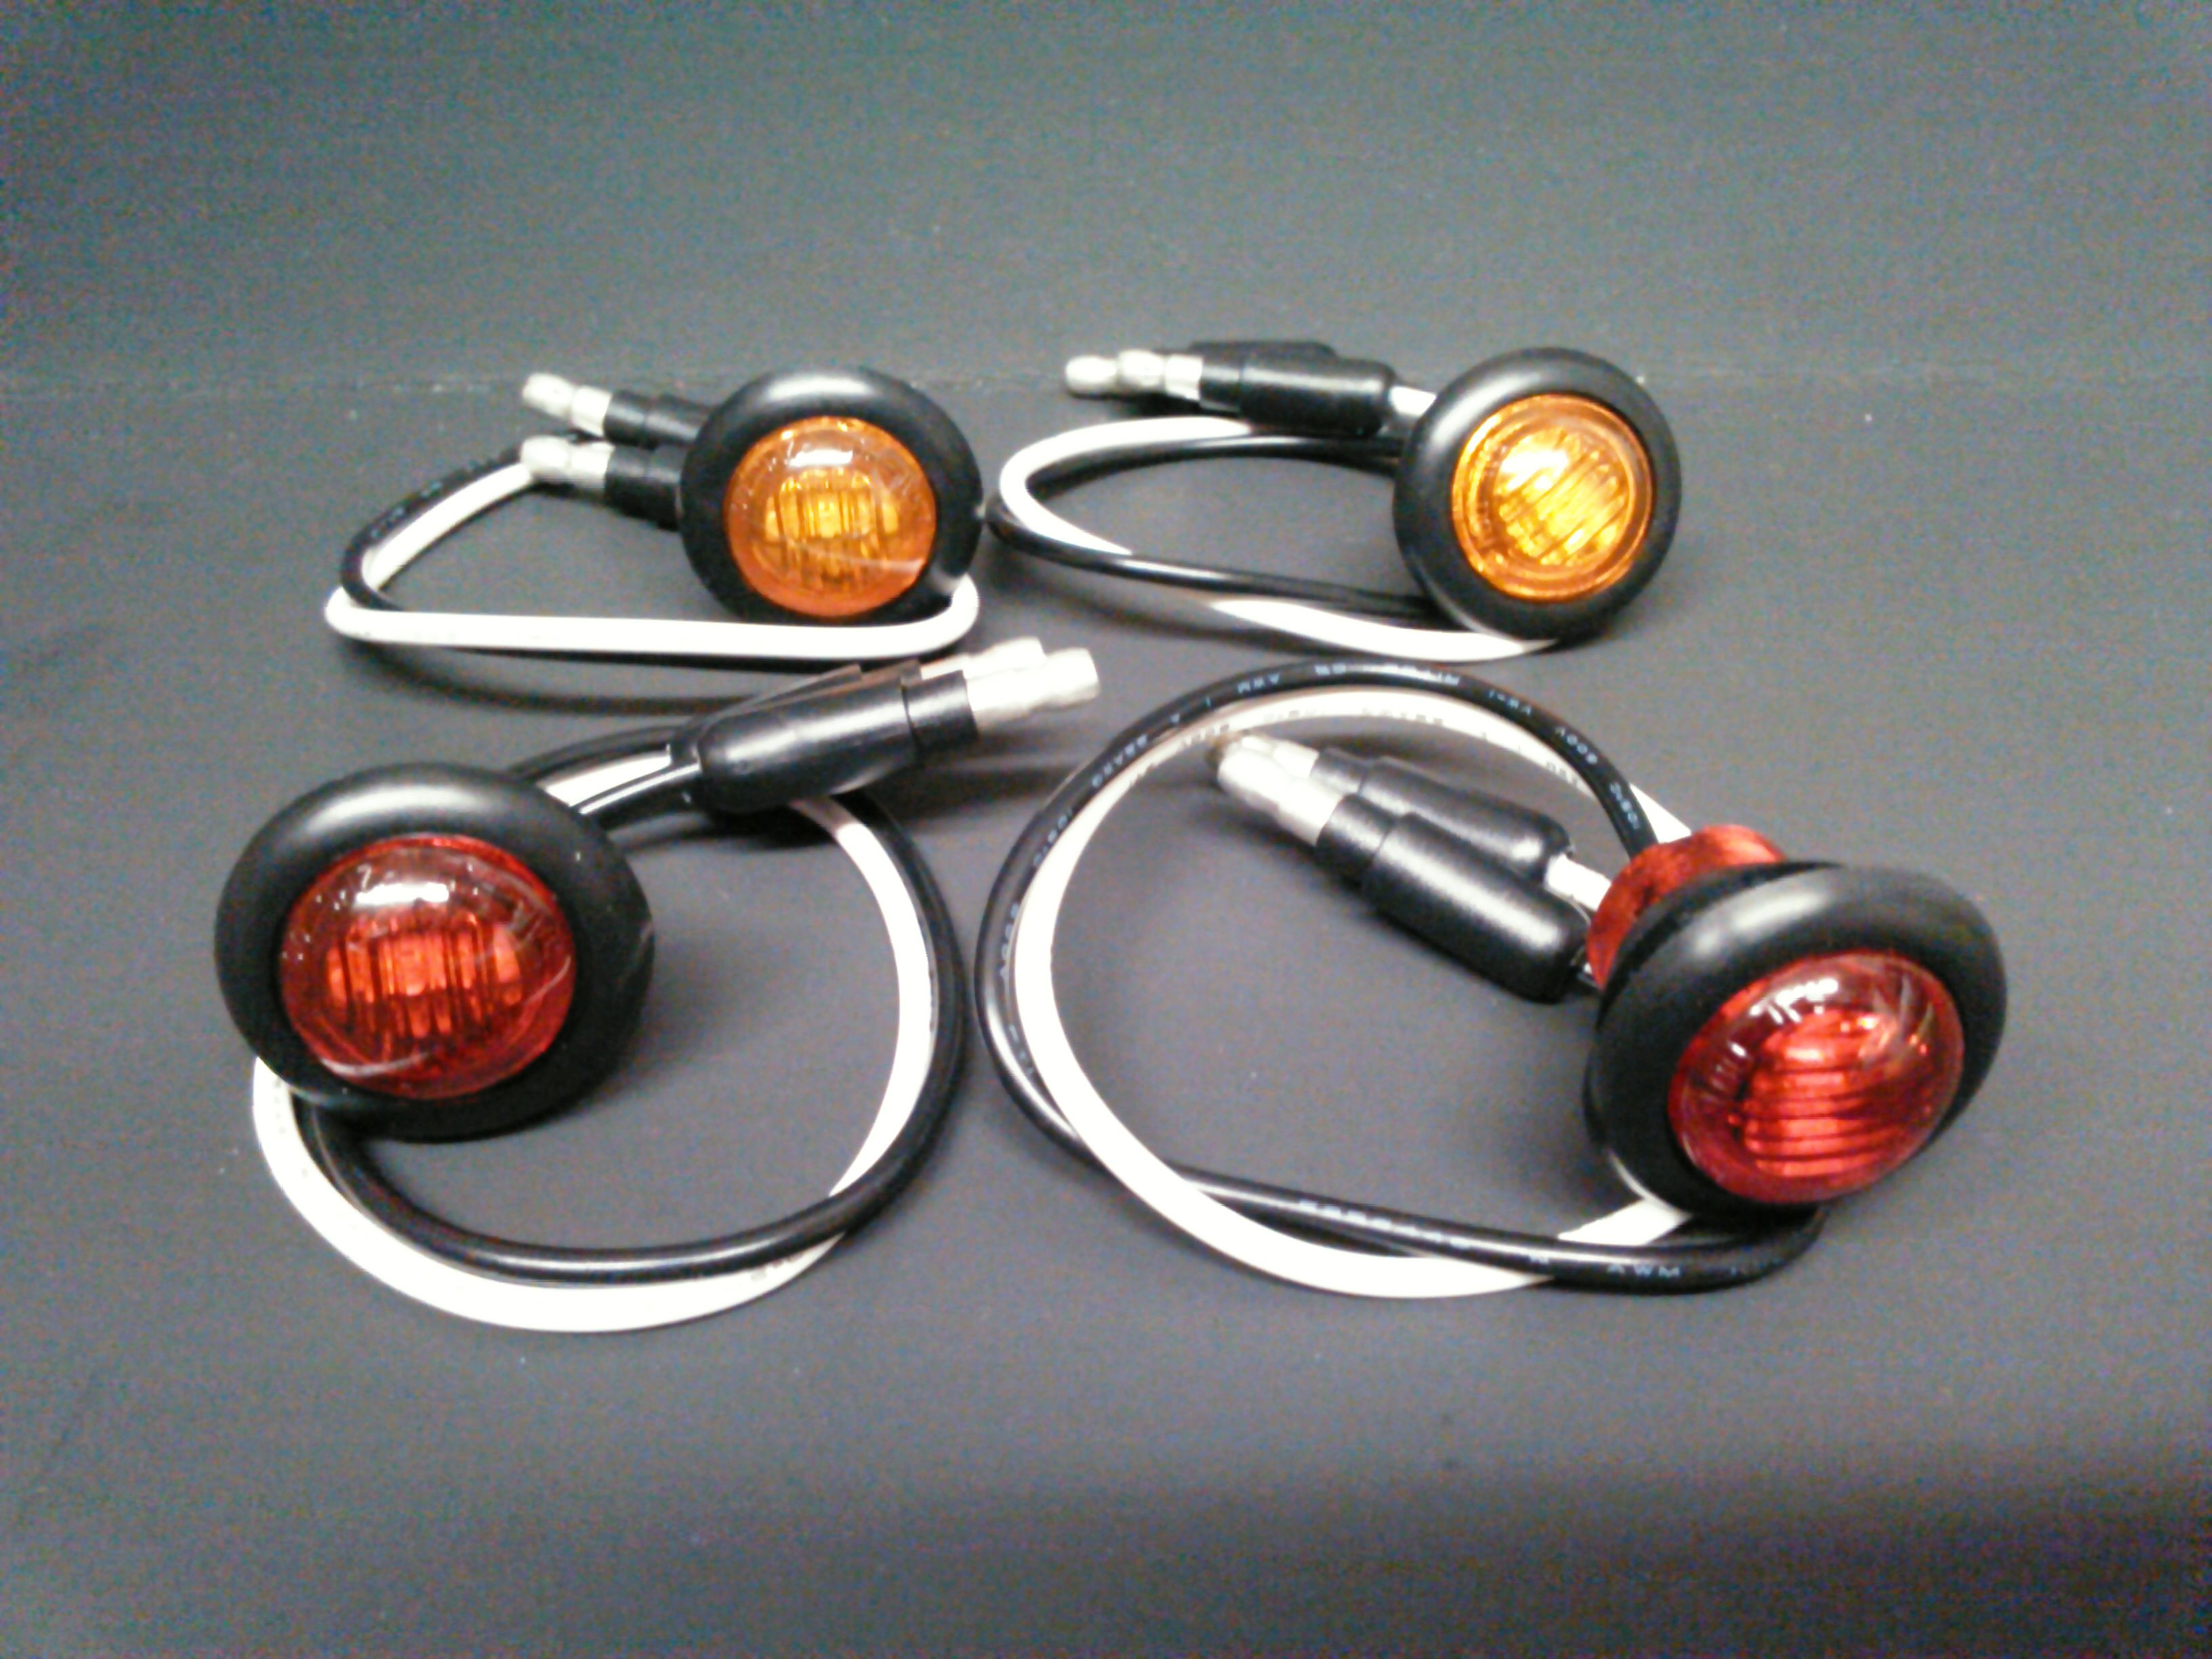 Led Turn Signal Lights For Your Sxs Utv Atv Wiring Diagrams Diagram Automotive The